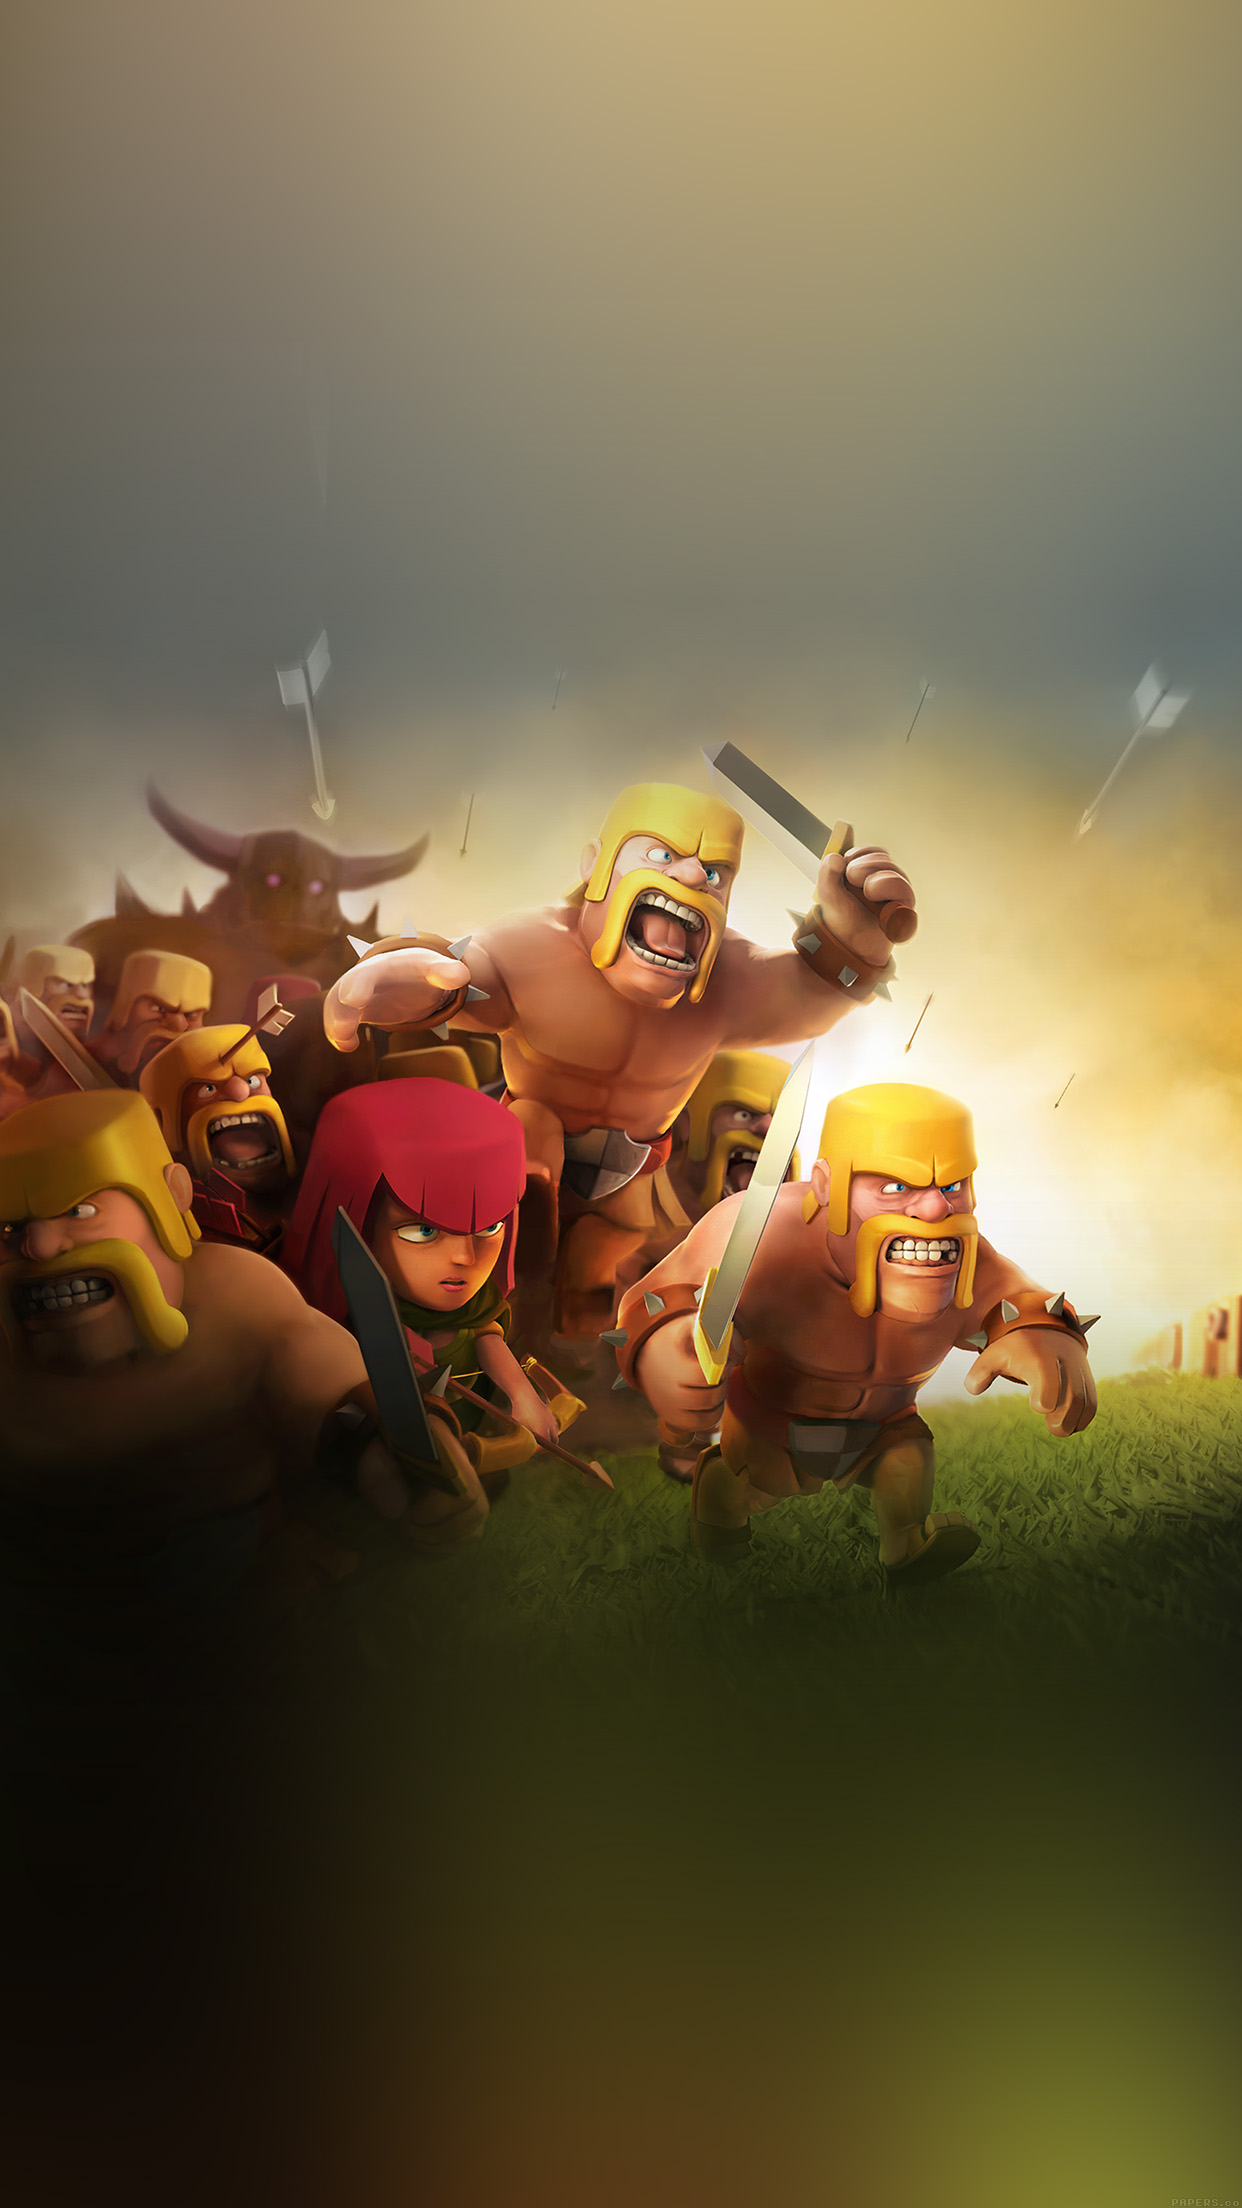 iPhone6papers - ak27-clash-of-clans-war-game-art-illust-cute